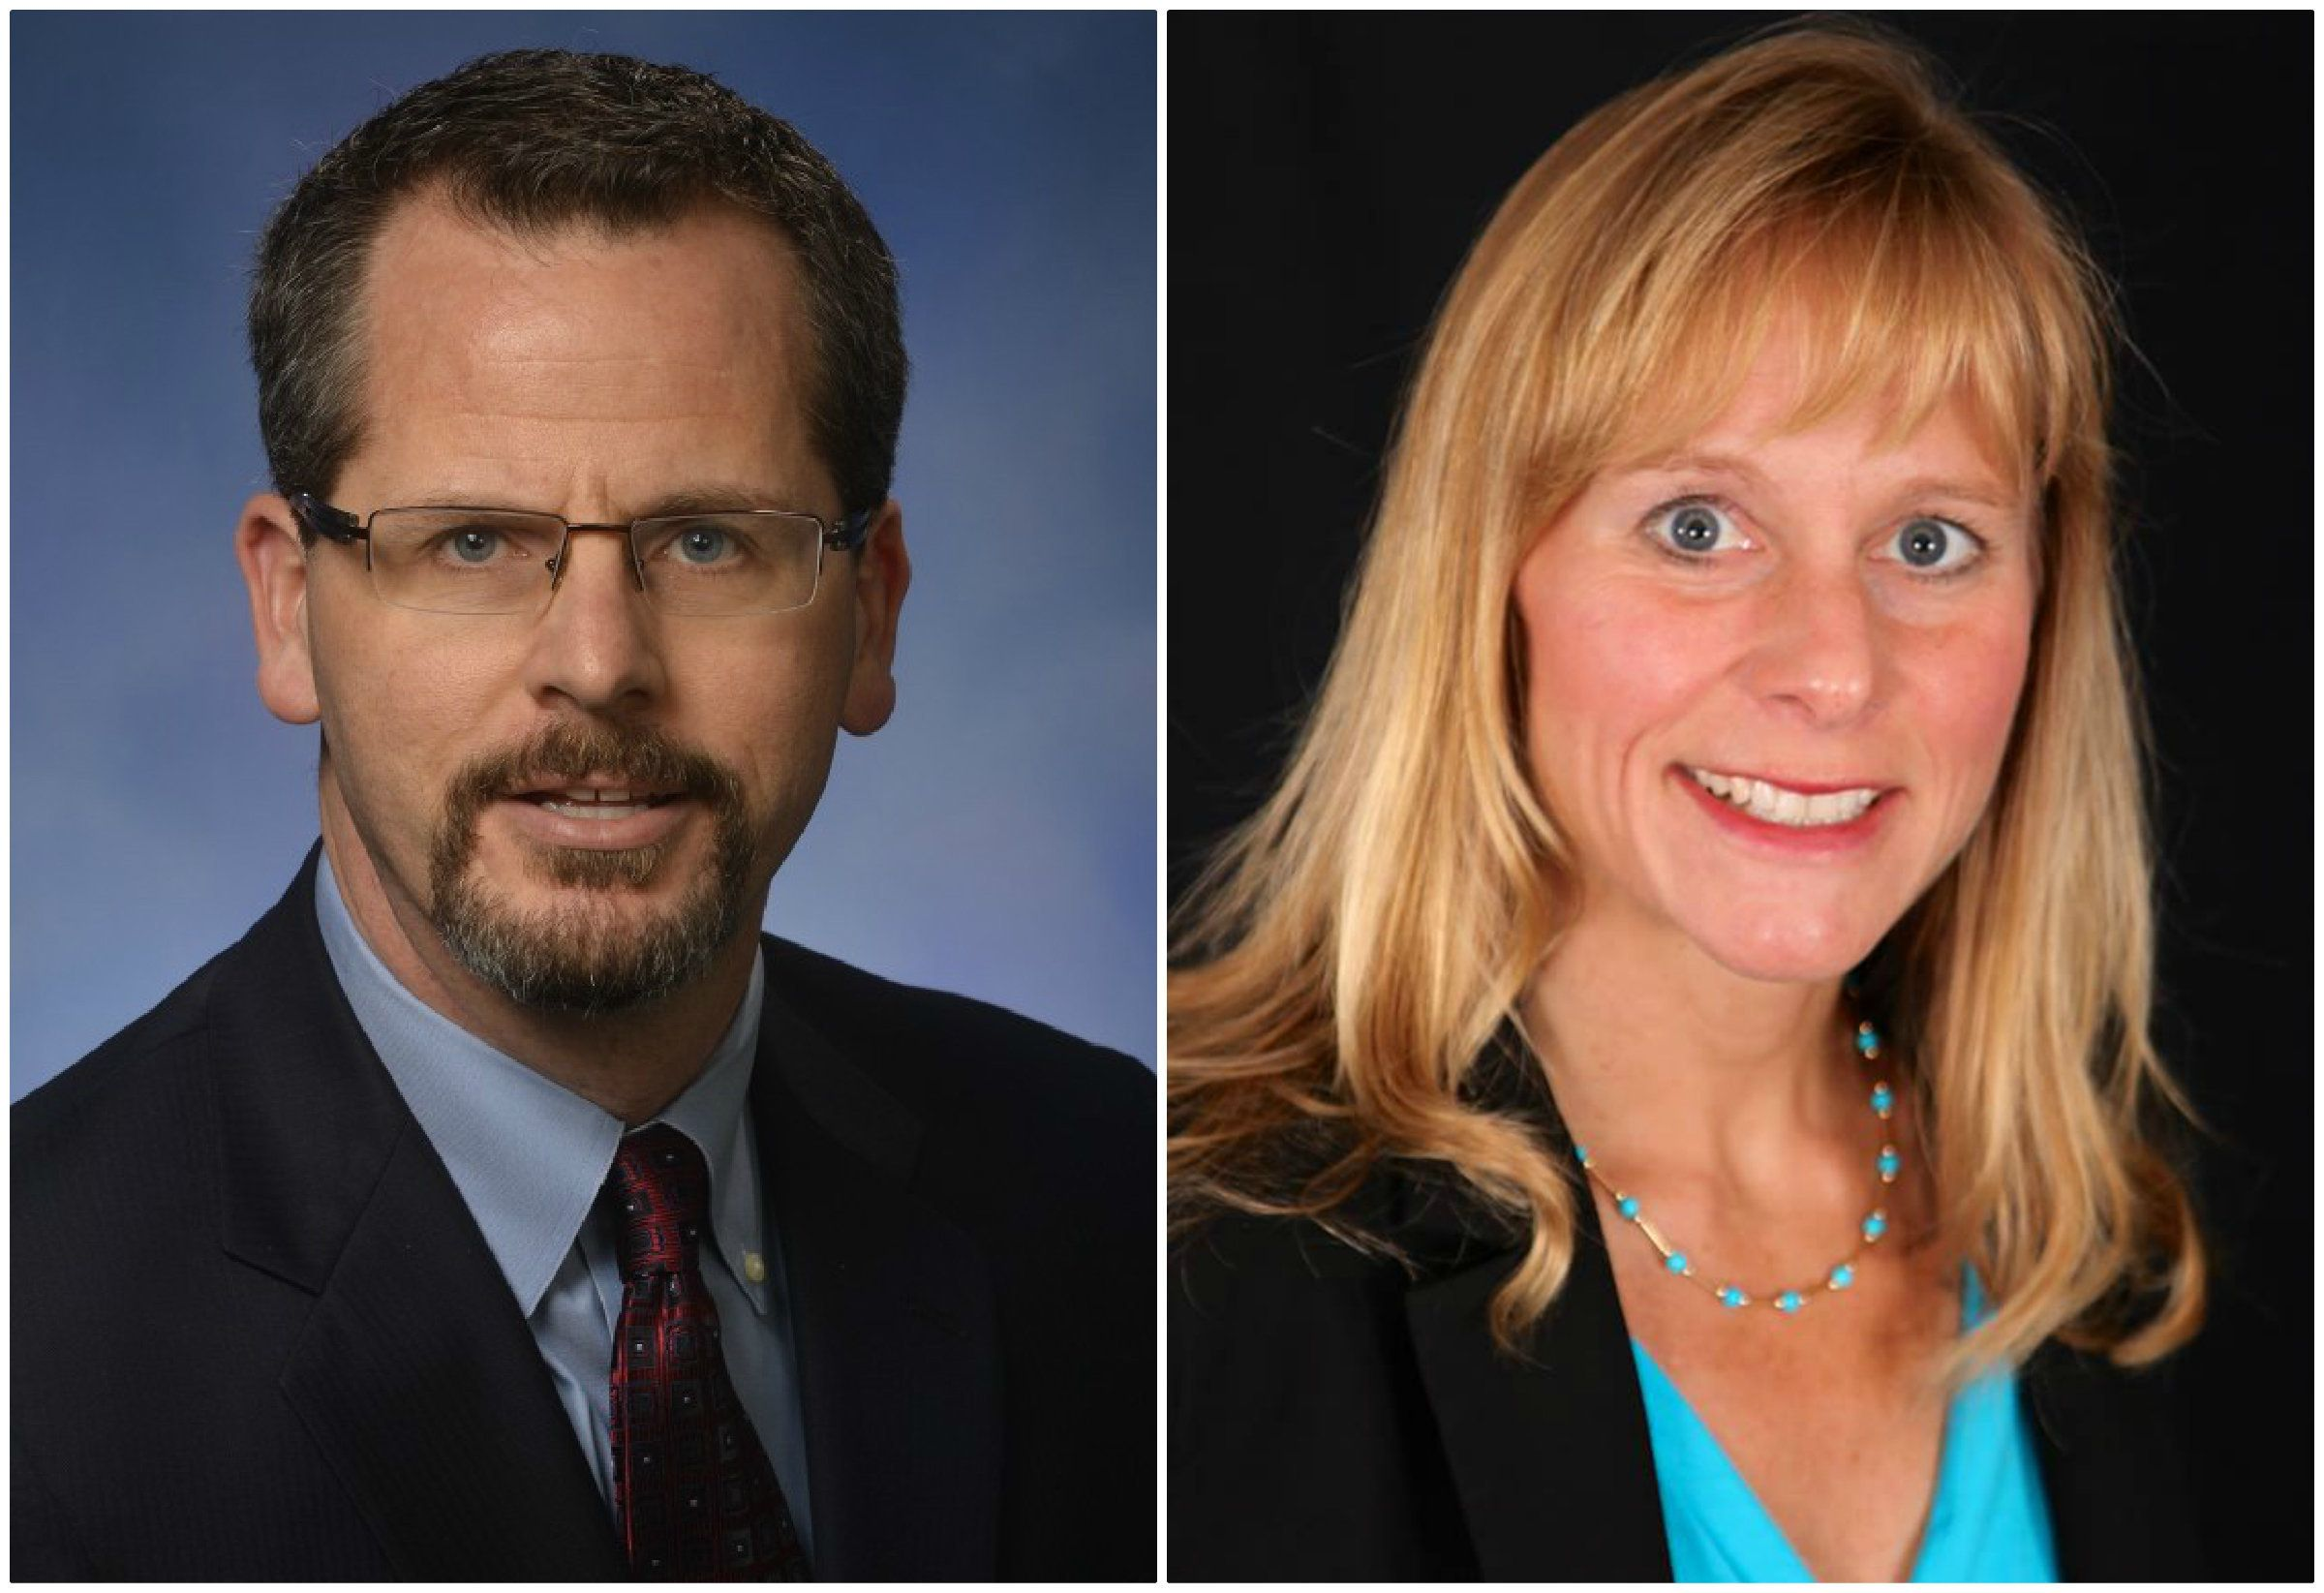 Michigan state representatives Todd Courser and Cindy Gamrat are being investigated for misconduct.